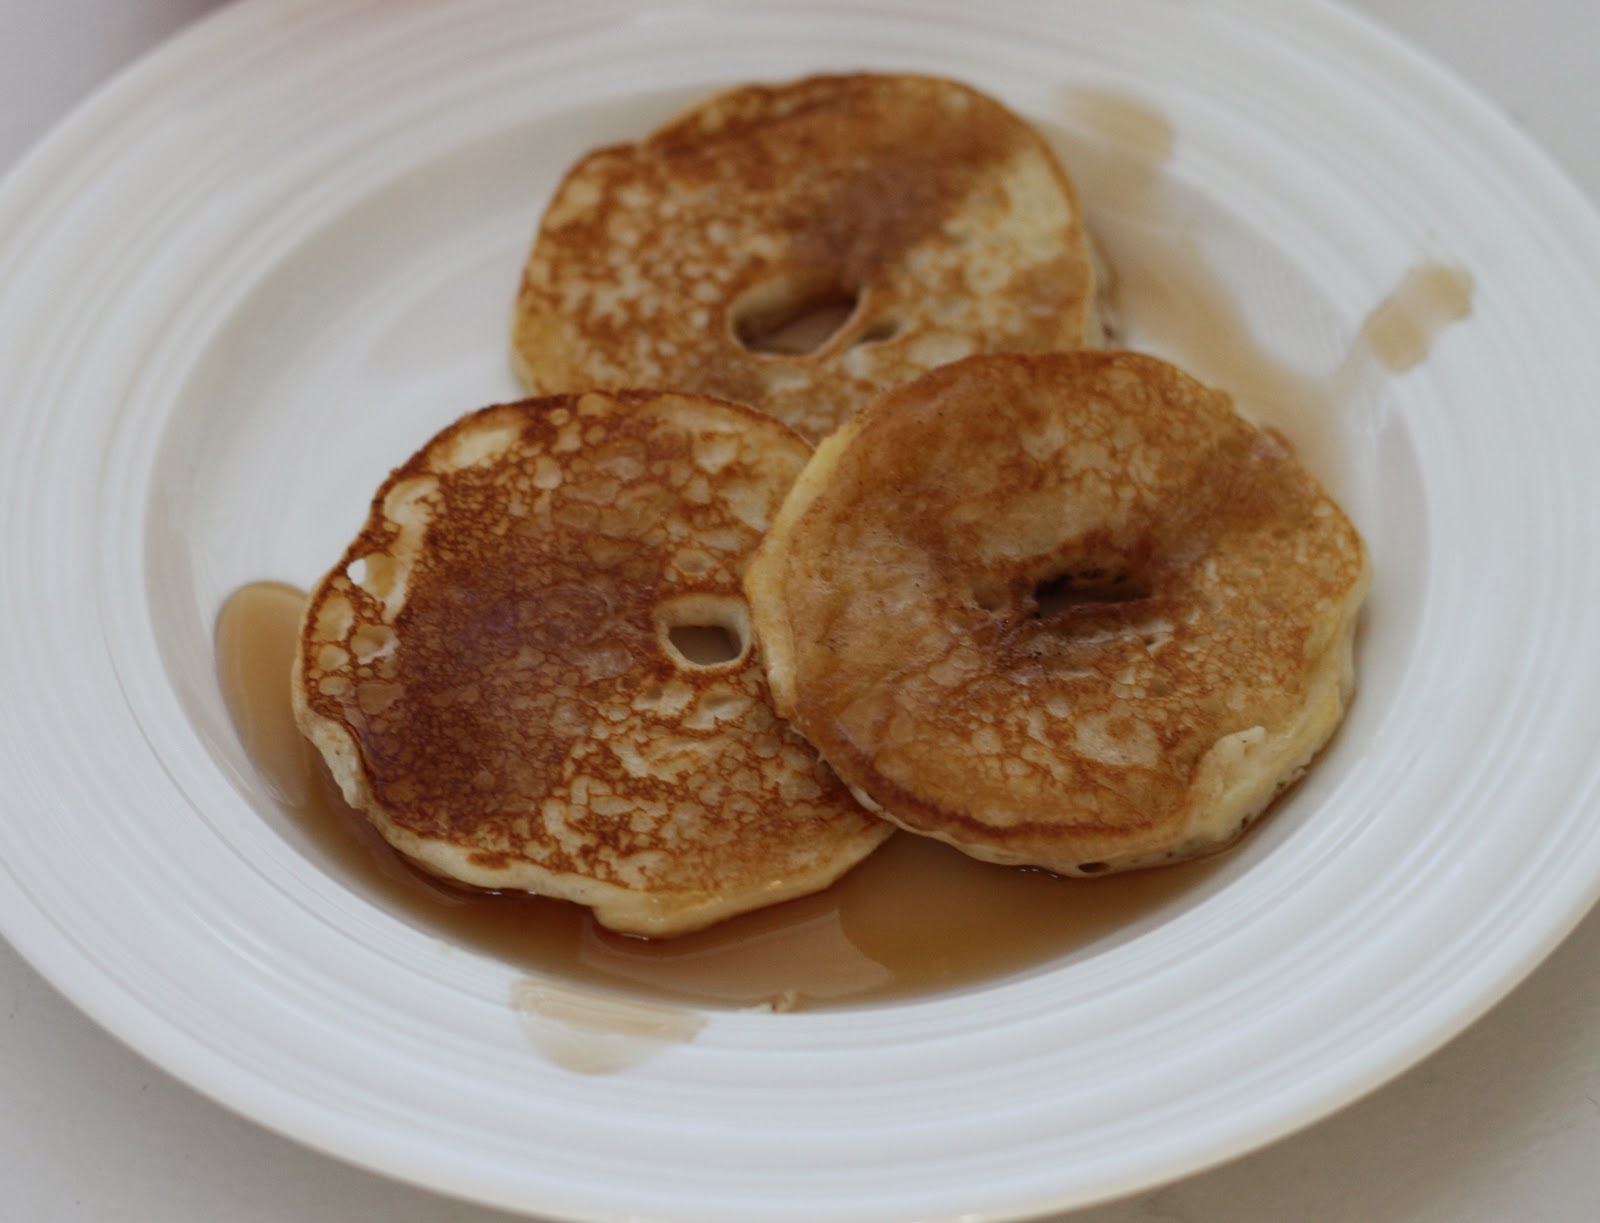 Add some syrup and you have some yummy apple pancakes for breakfast.